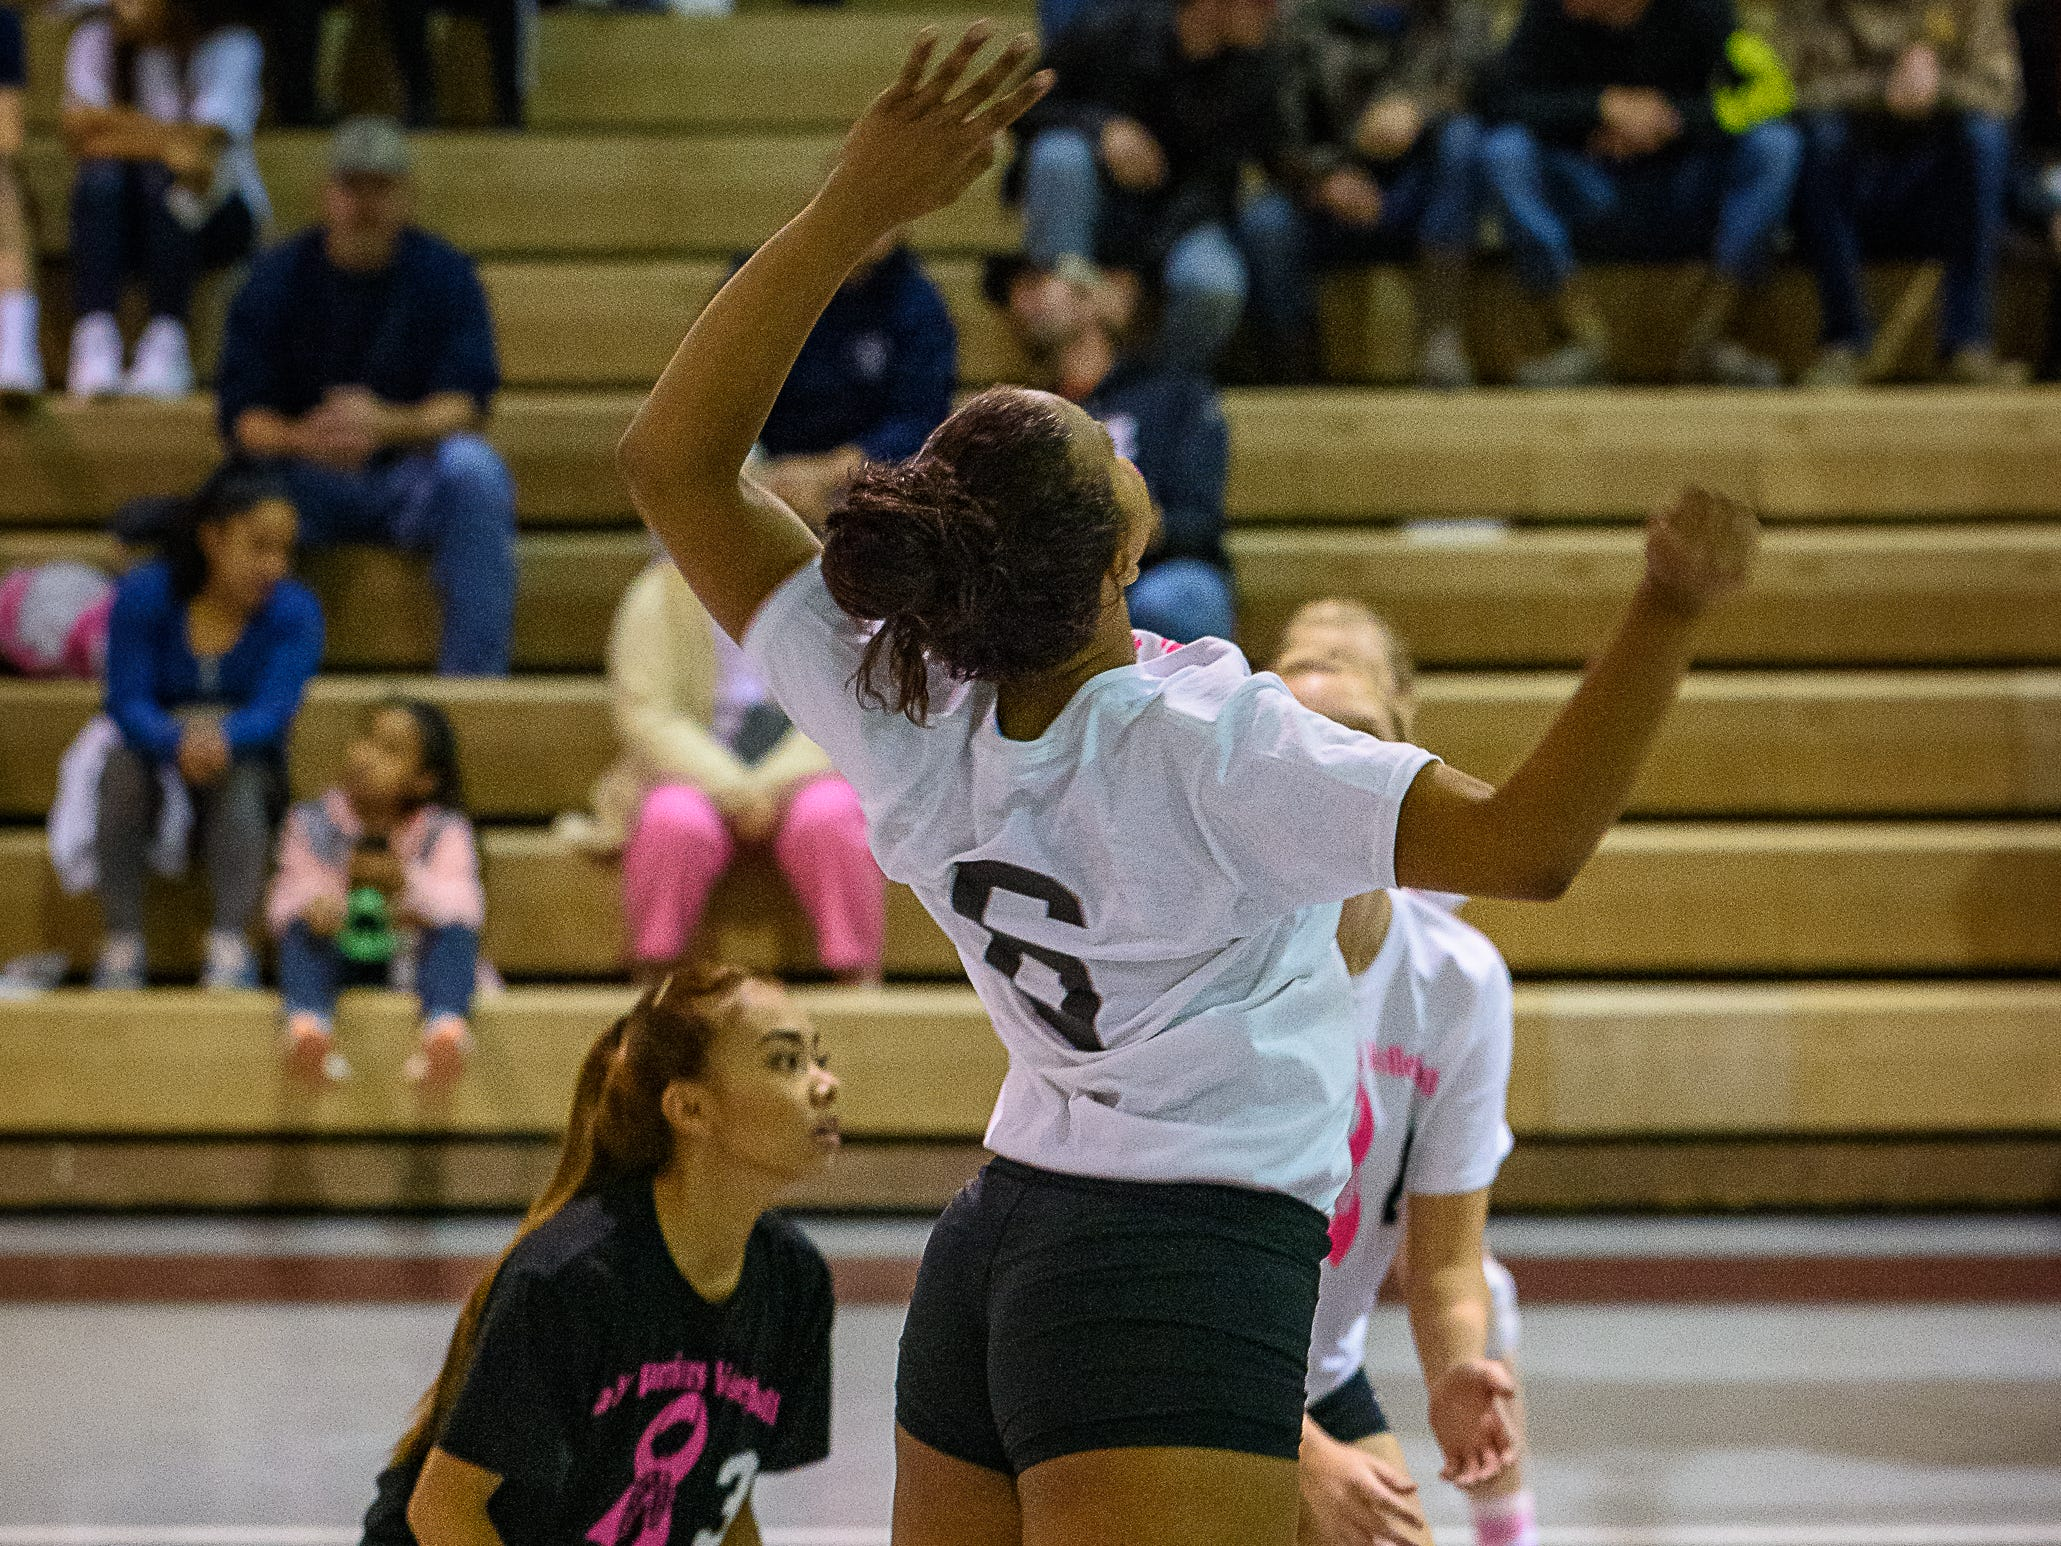 Nandua's Arianna Fletcher leaps for the ball during their varsity volleyball game at home against Chincoteague High School on Oct. 25, 2018.